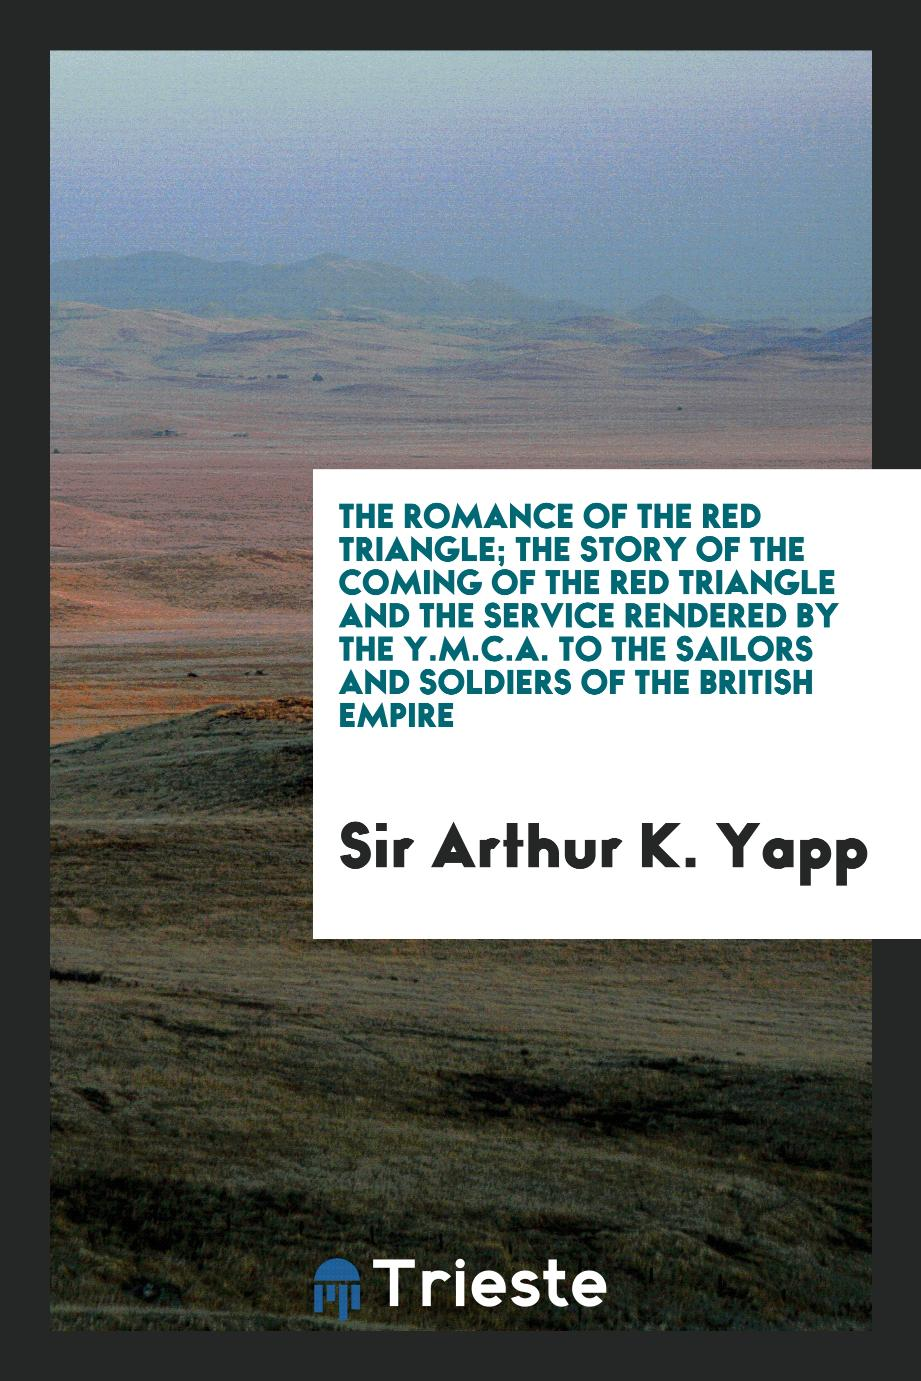 The romance of the red triangle; the story of the coming of the red triangle and the service rendered by the Y.M.C.A. to the sailors and soldiers of the British empire